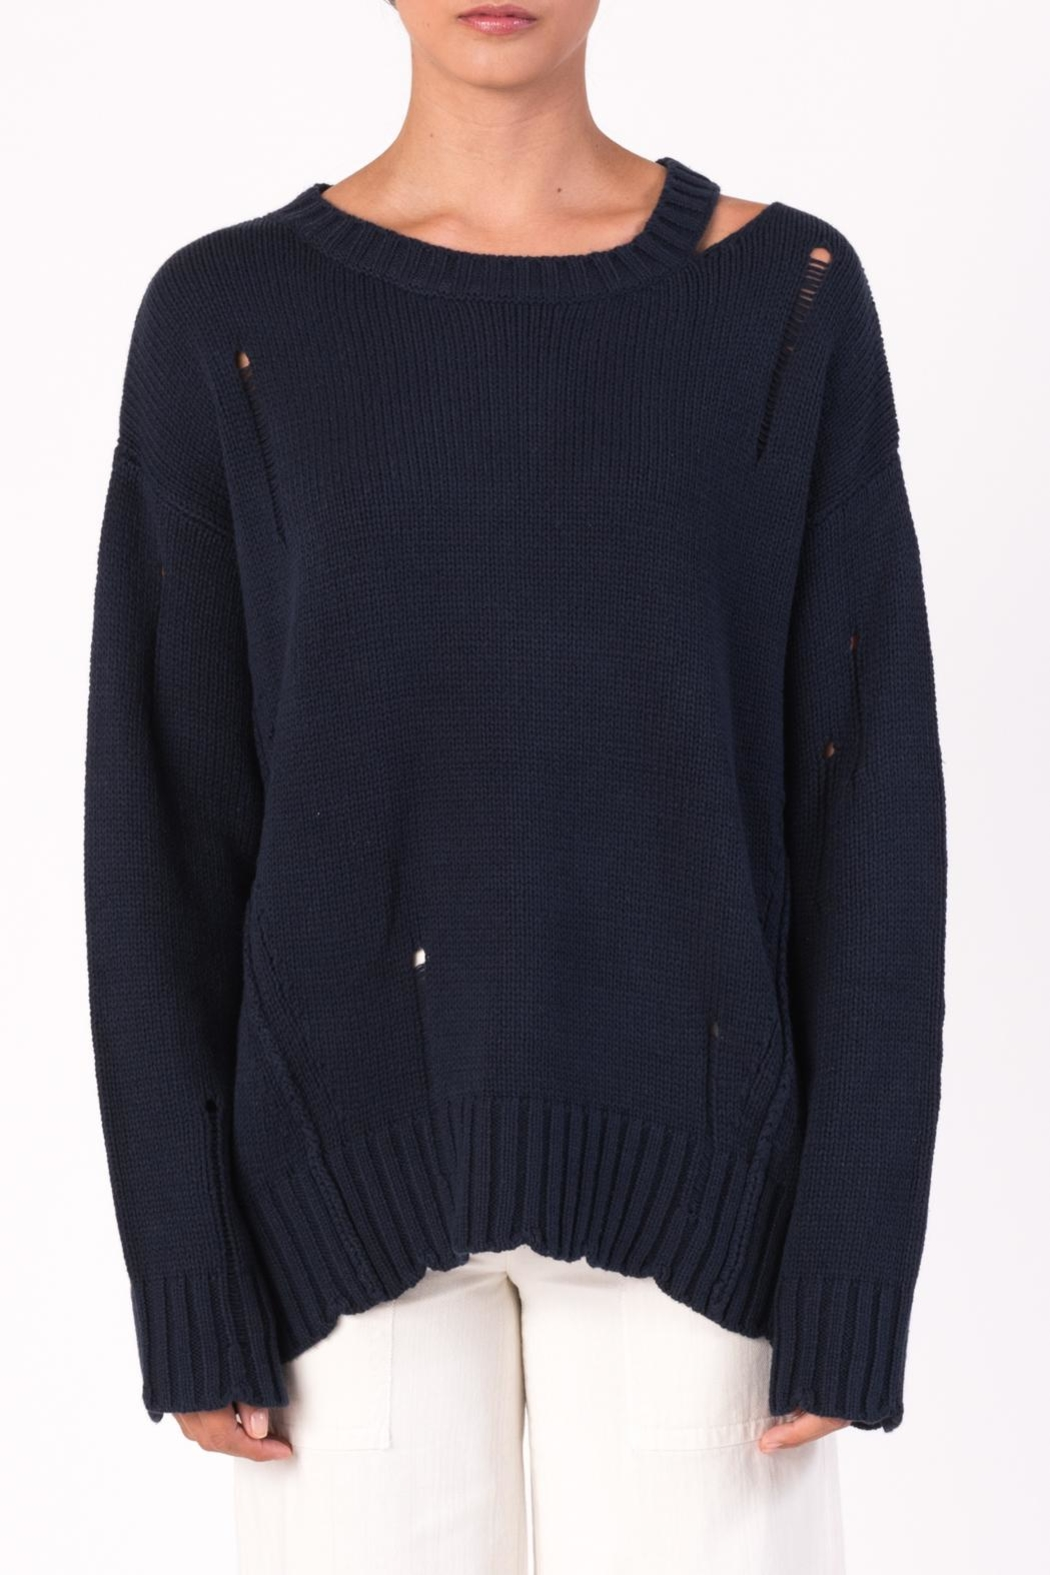 Margaret O'Leary Cotton Grunge Sweater - Front Cropped Image